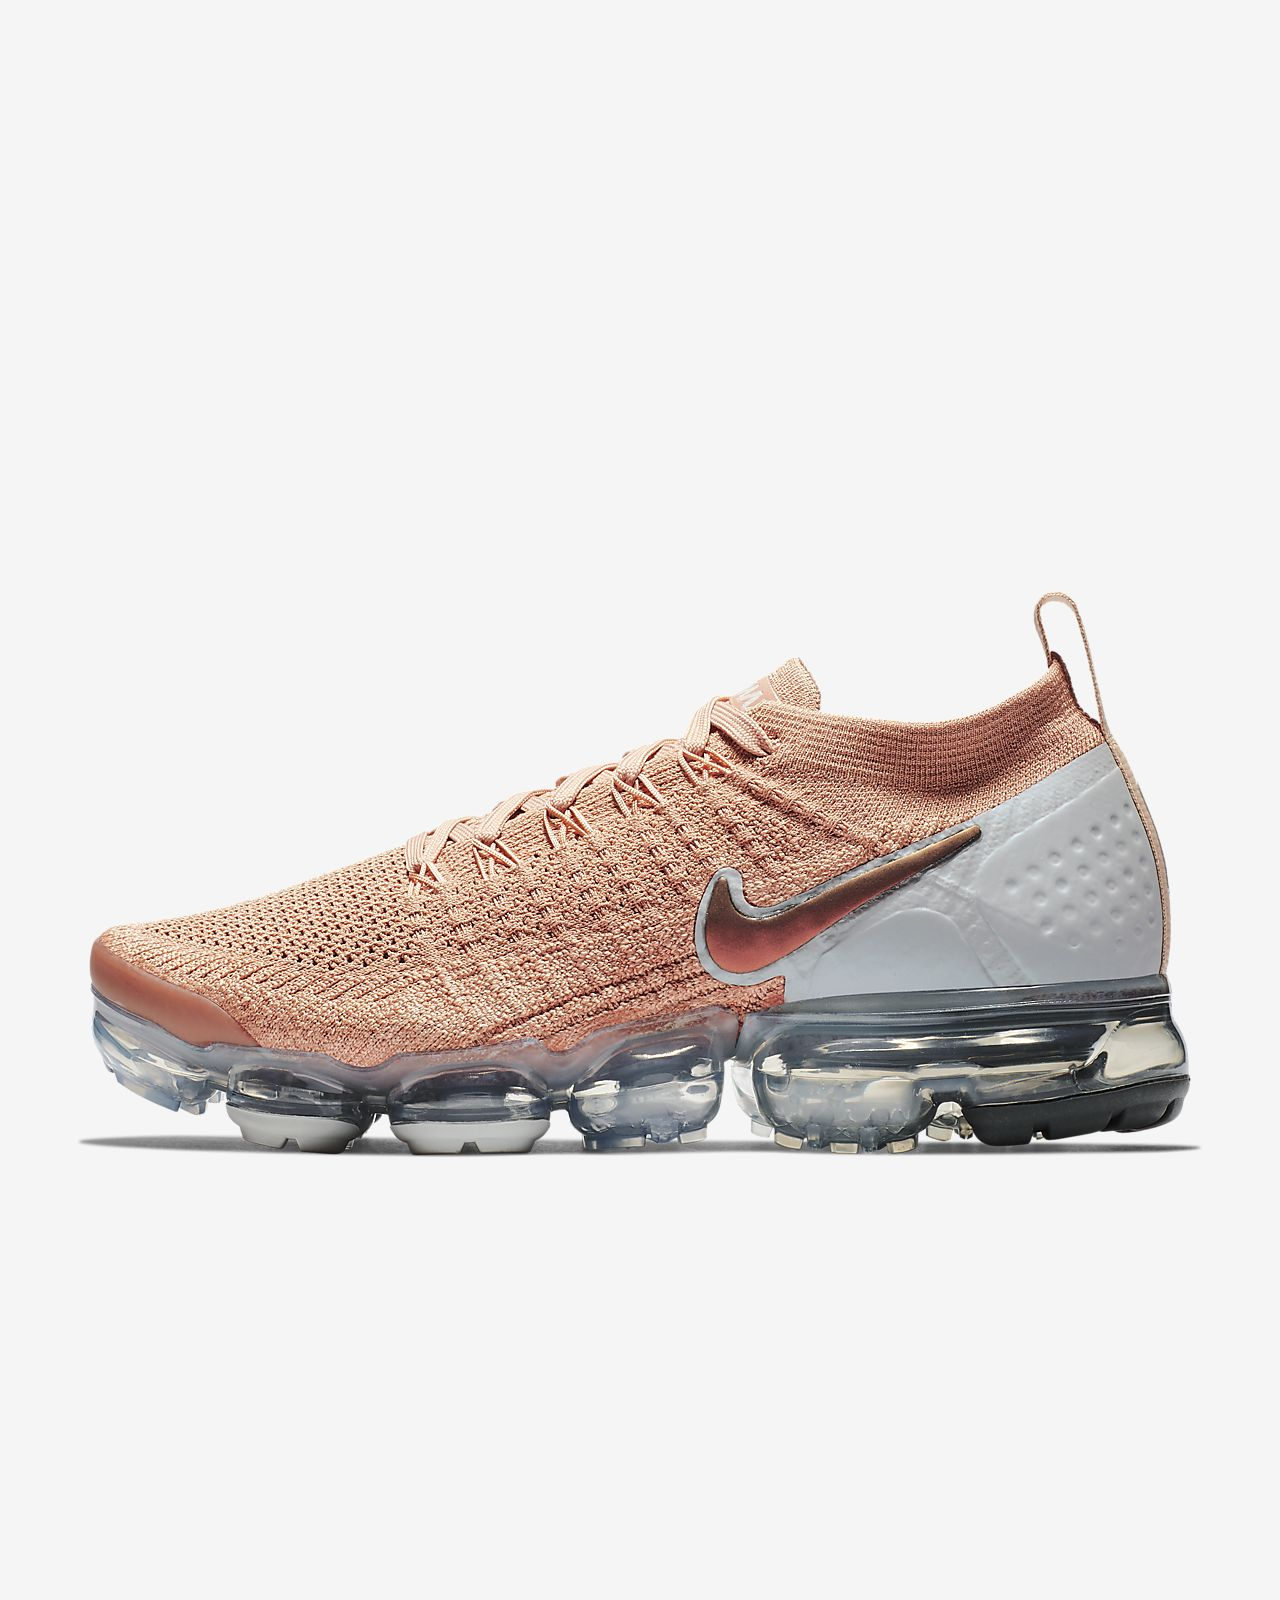 wholesale dealer 7db2d c8e8a ... Nike Air VaporMax Flyknit 2 Damesschoen